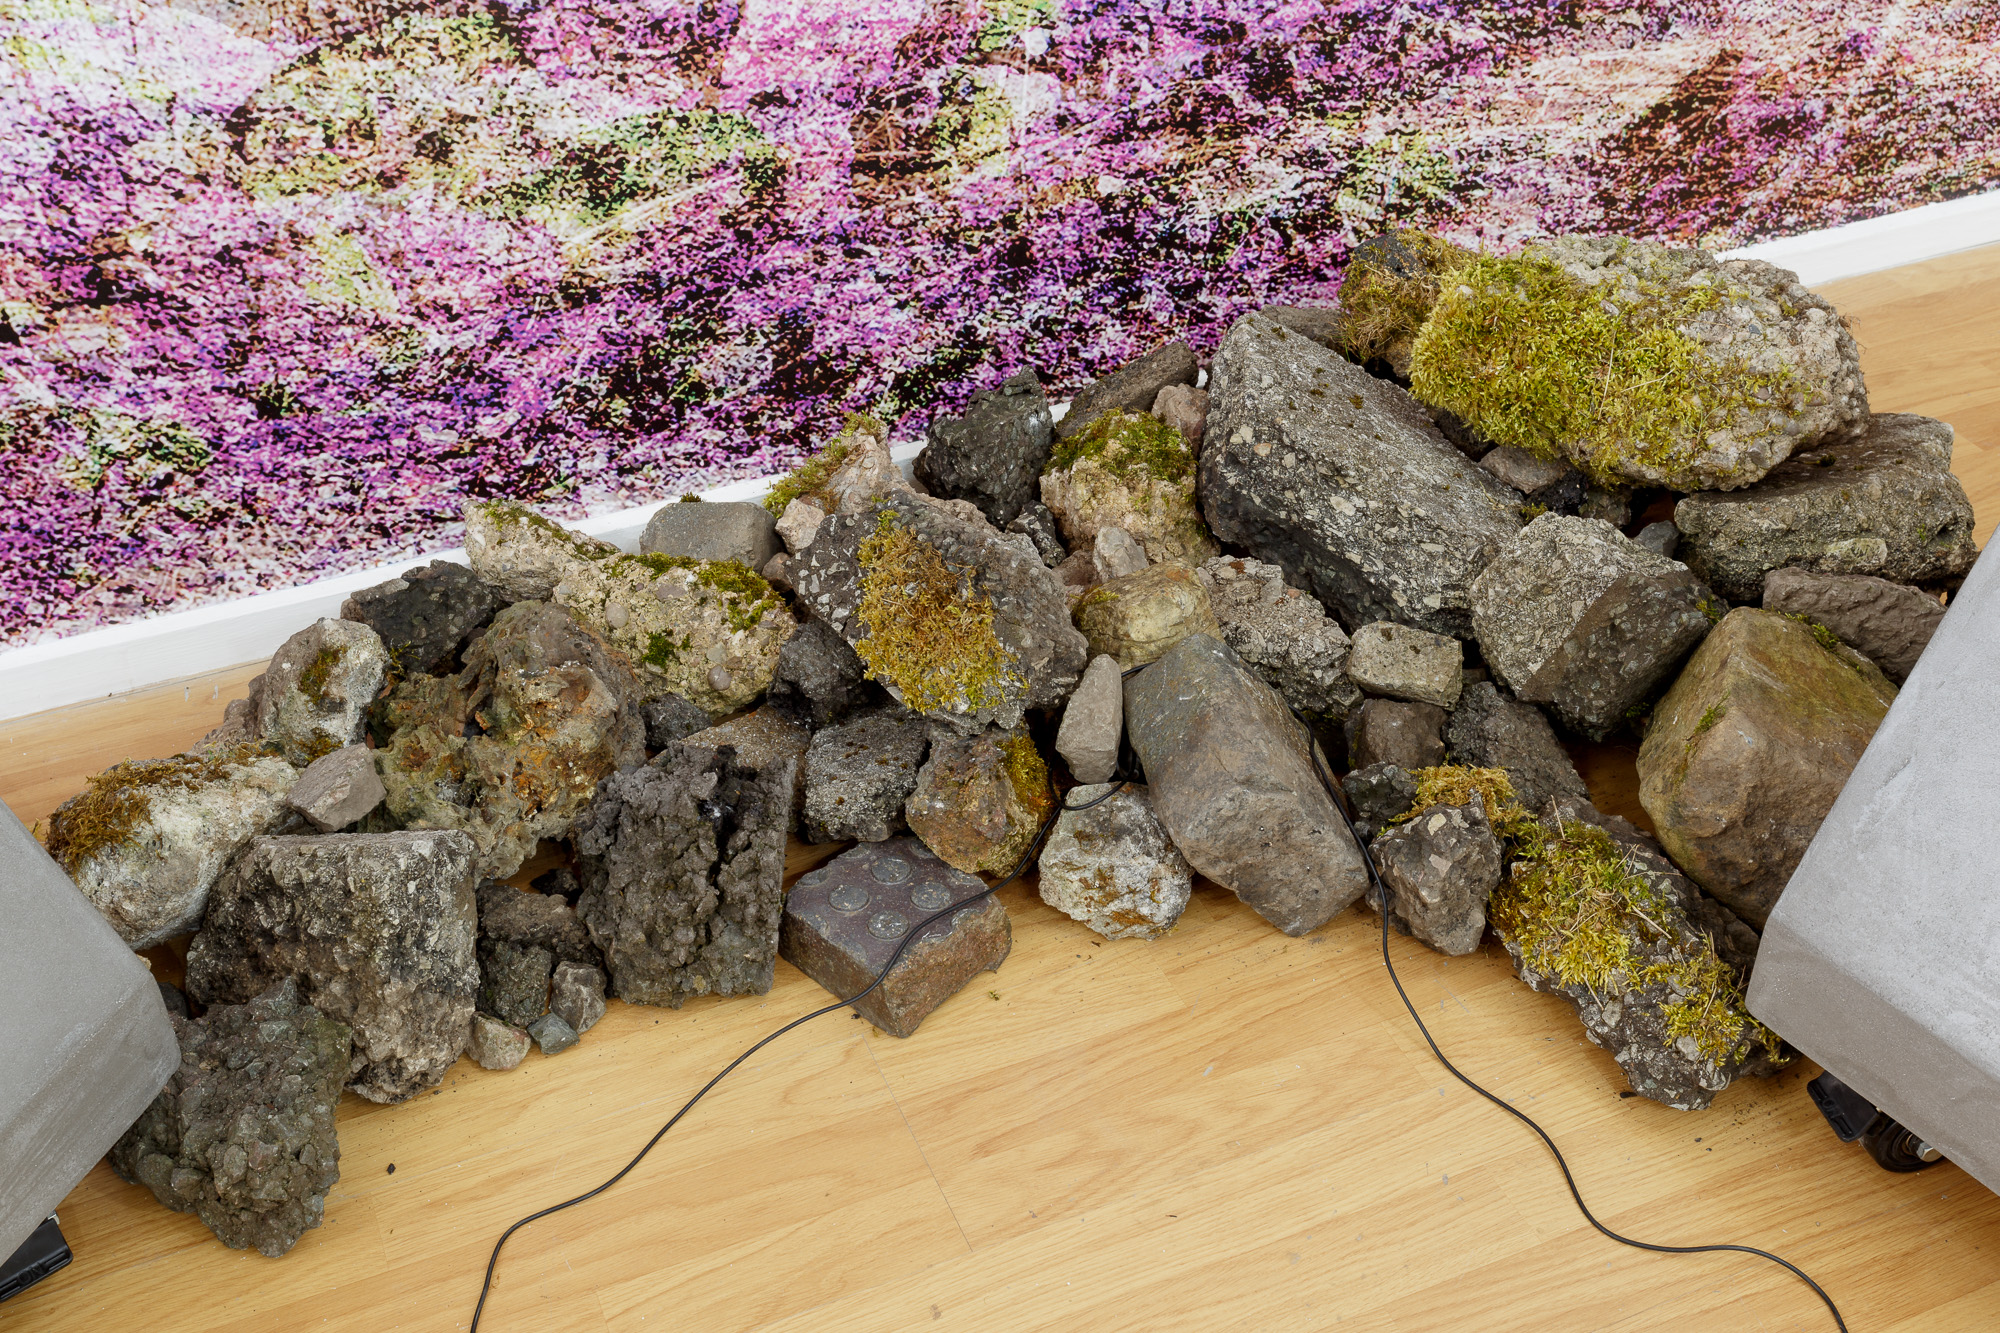 Concrete Island (2017)  Wall sized digital photograph, concrete sculpture, looped sound work, headphones, rubble. Dimensions Variable.  Exhibited at:  Airspace Gallery 5th May to 3rd June 2017.